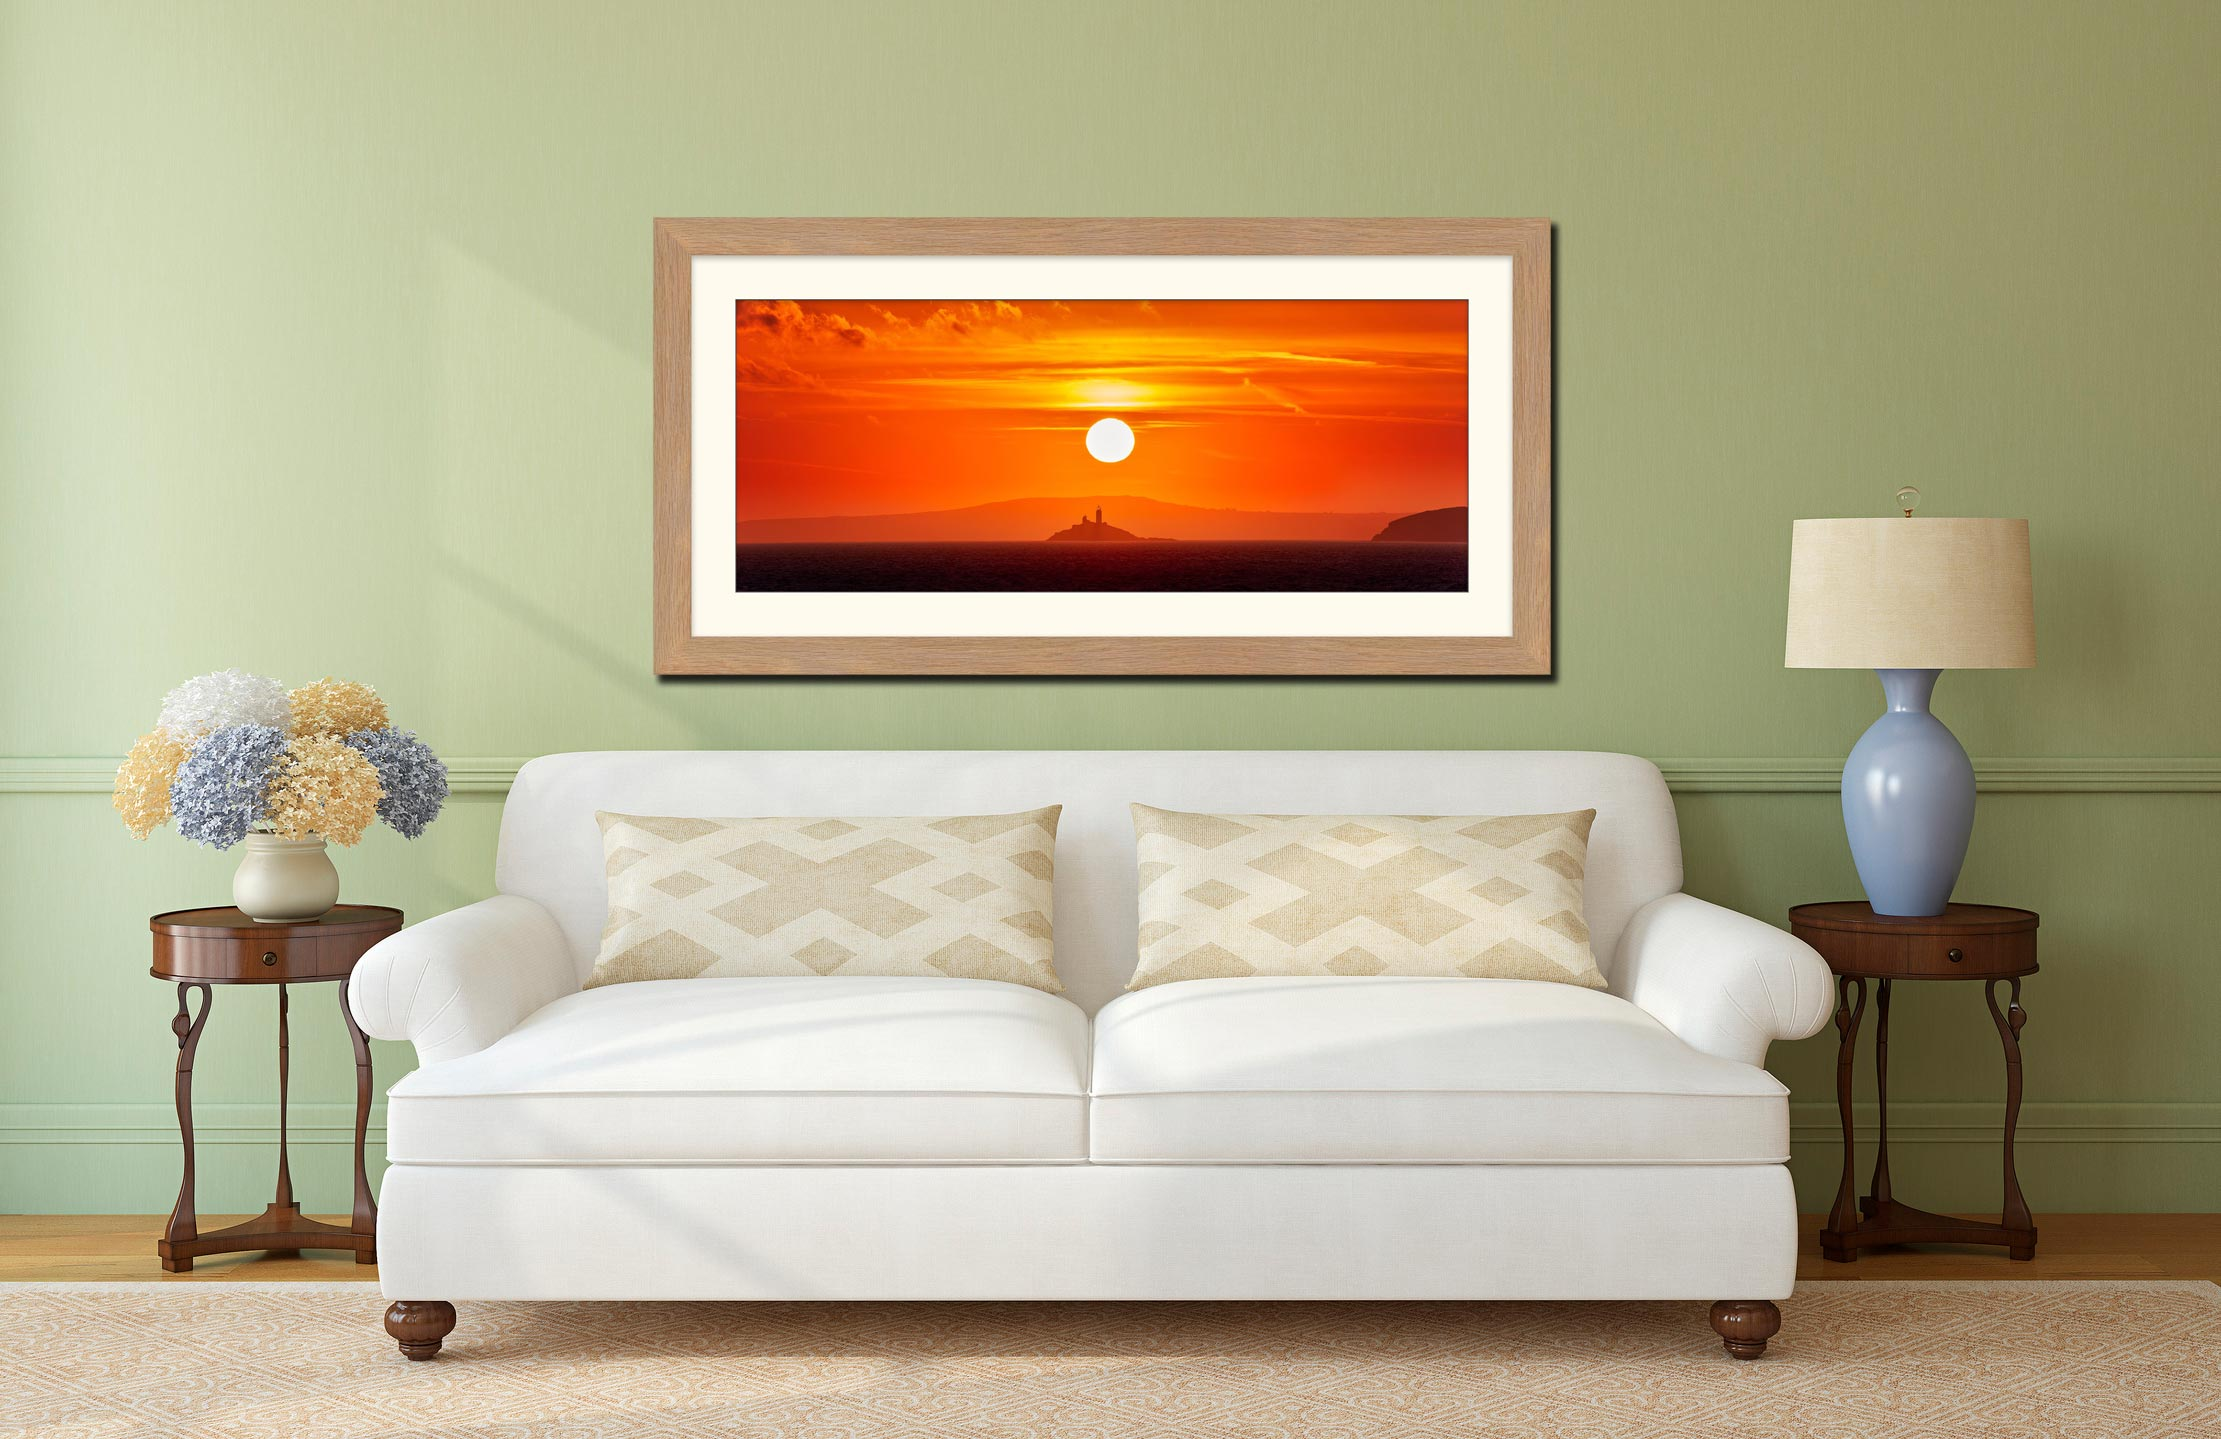 Godrevy Lighthouse Sunrise - Framed Print with Mount on Wall